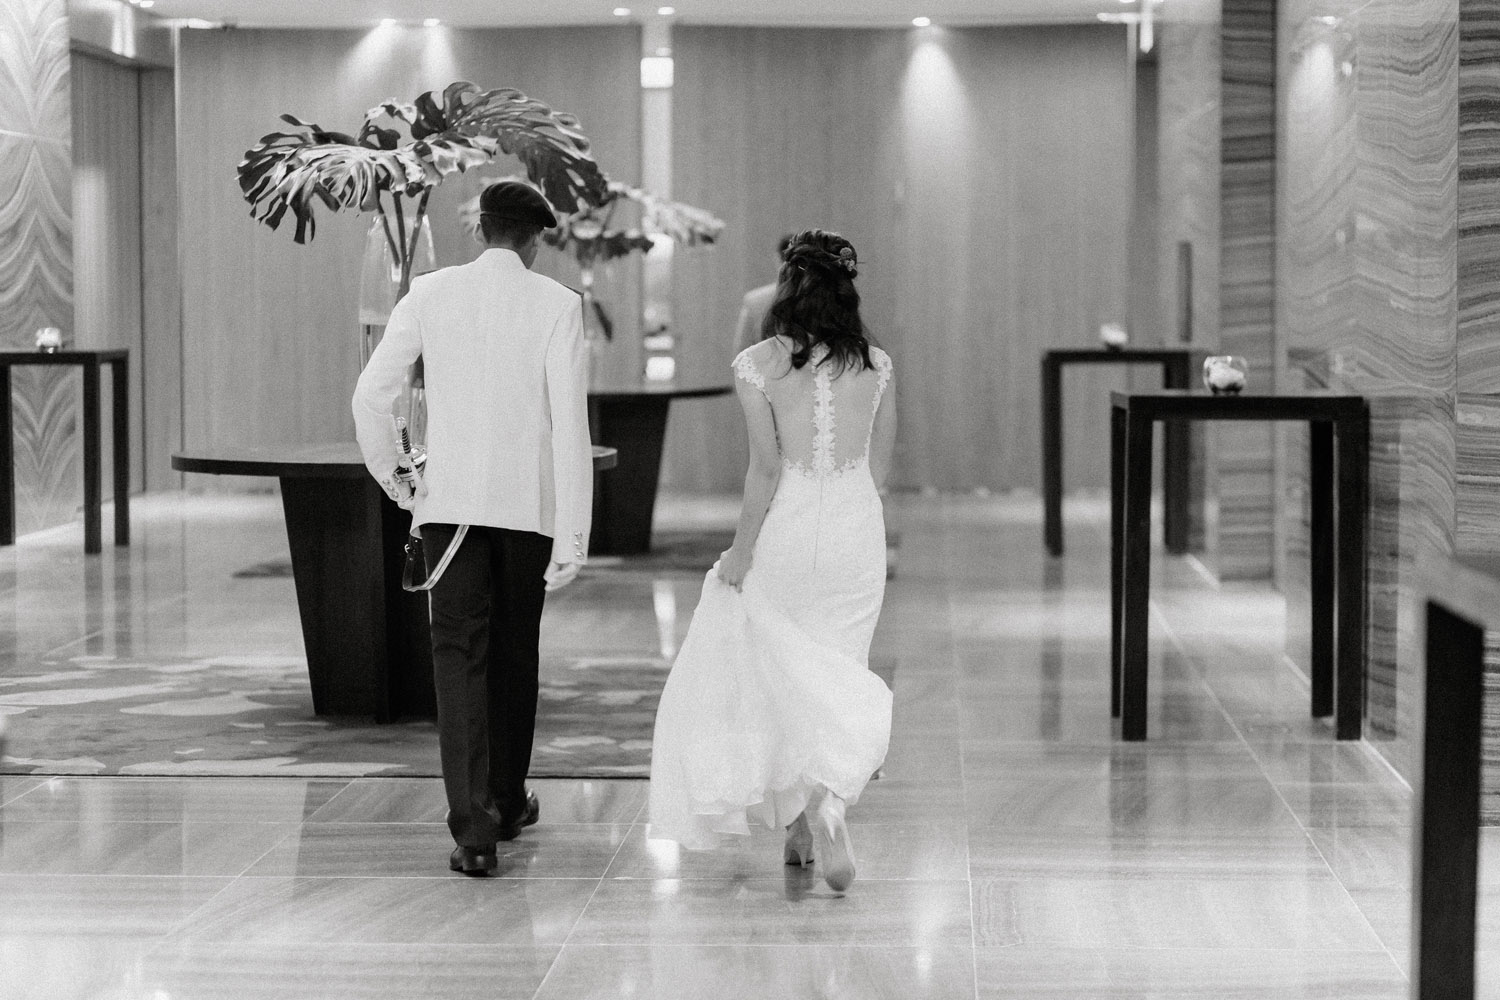 singapore-wedding-photographer-wemadethese-suriya-xinqi-wedding-095.jpg